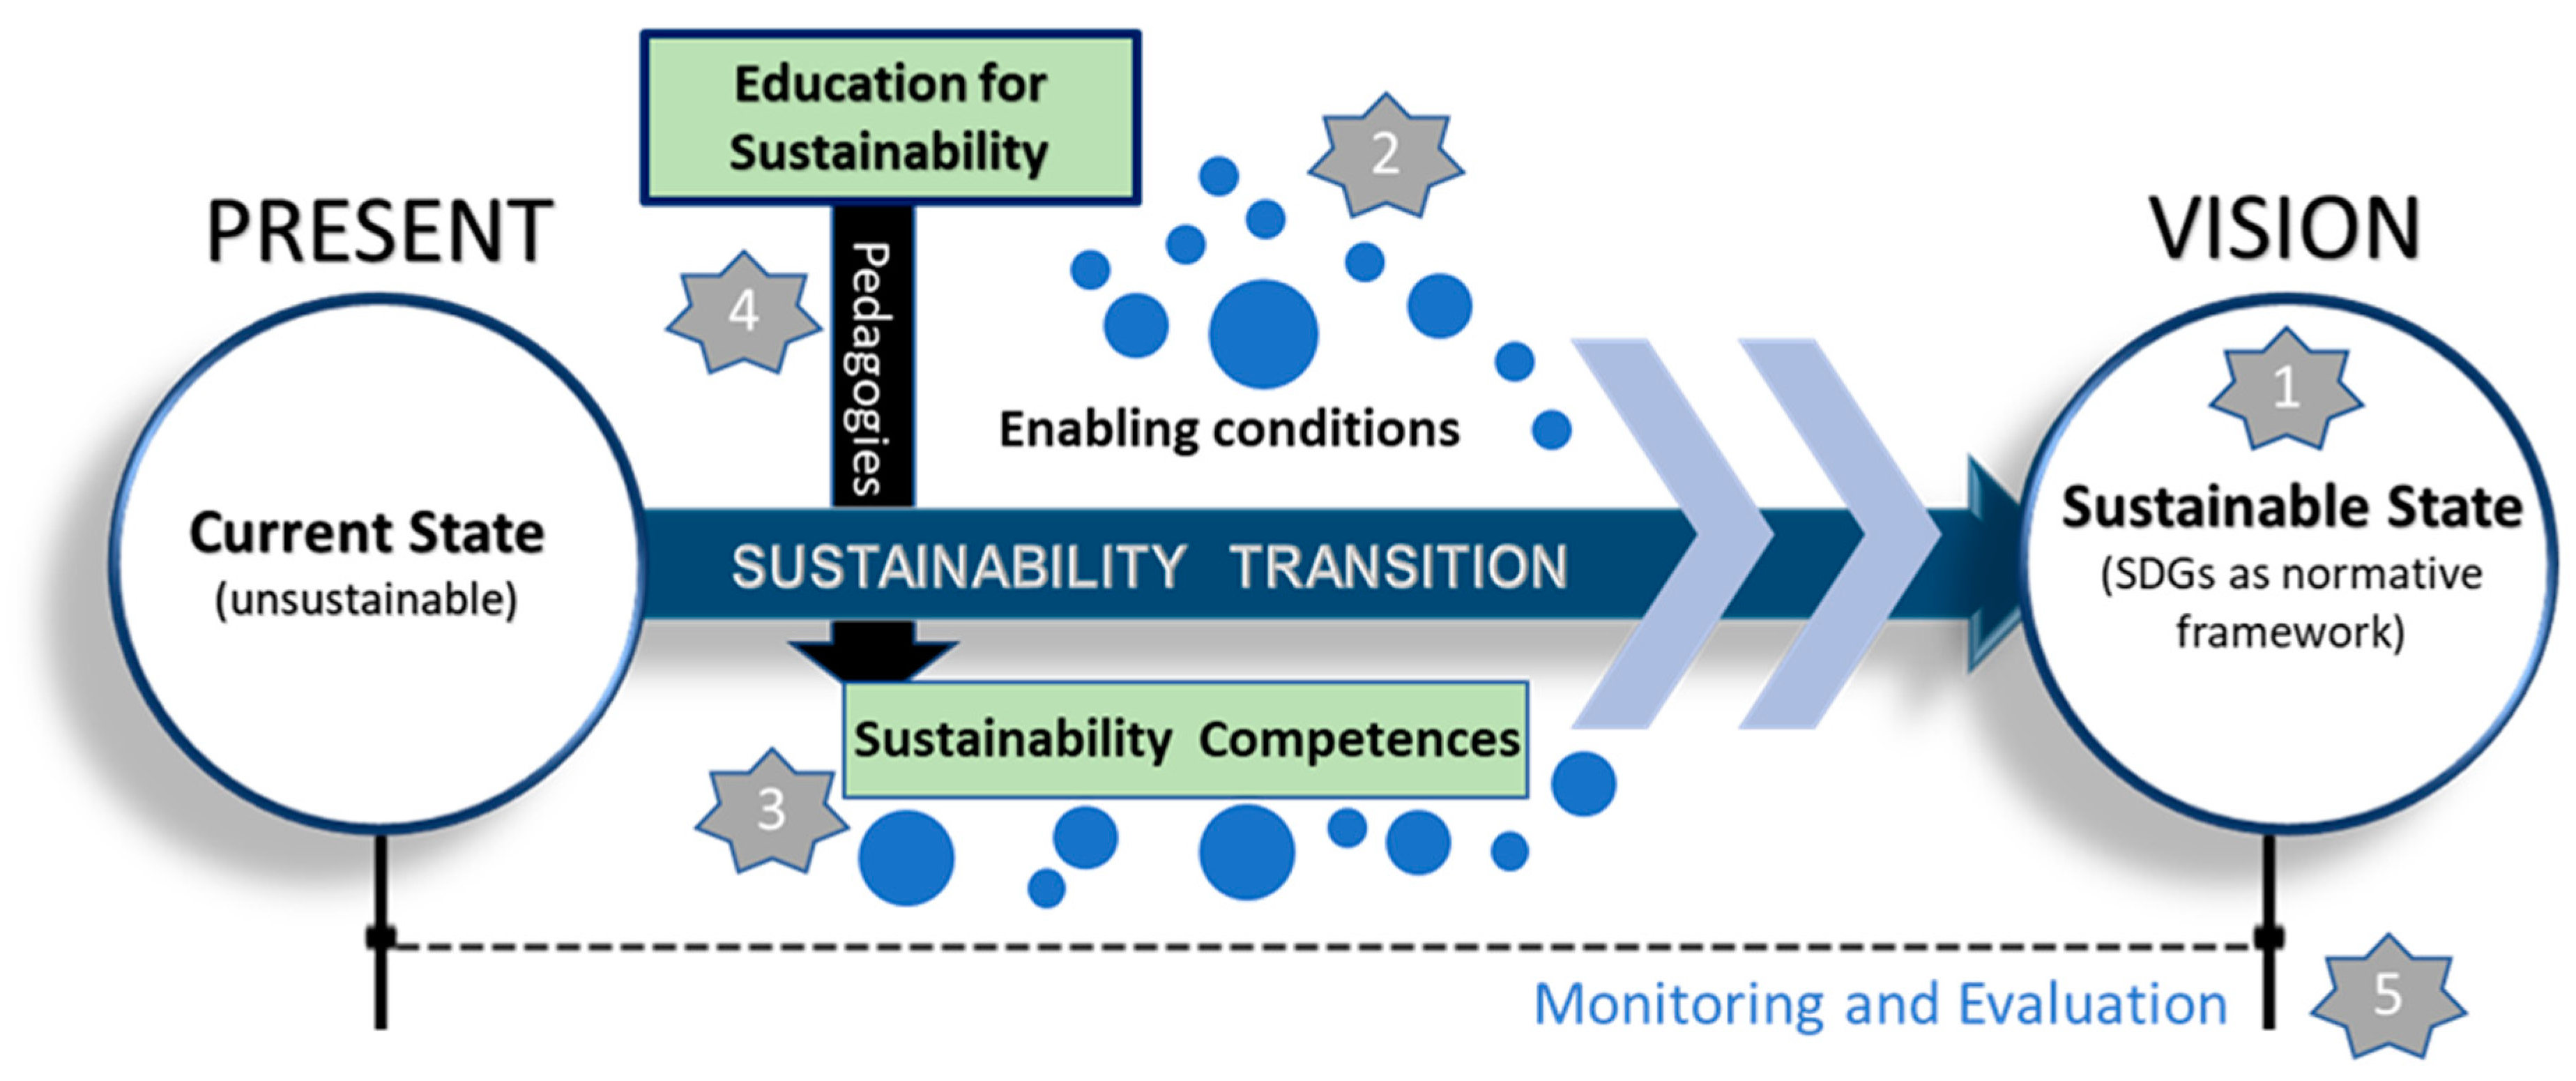 Sustainability | Free Full-Text | Education for Sustainable Development: A  Systemic Framework for Connecting the SDGs to Educational Outcomes | HTML